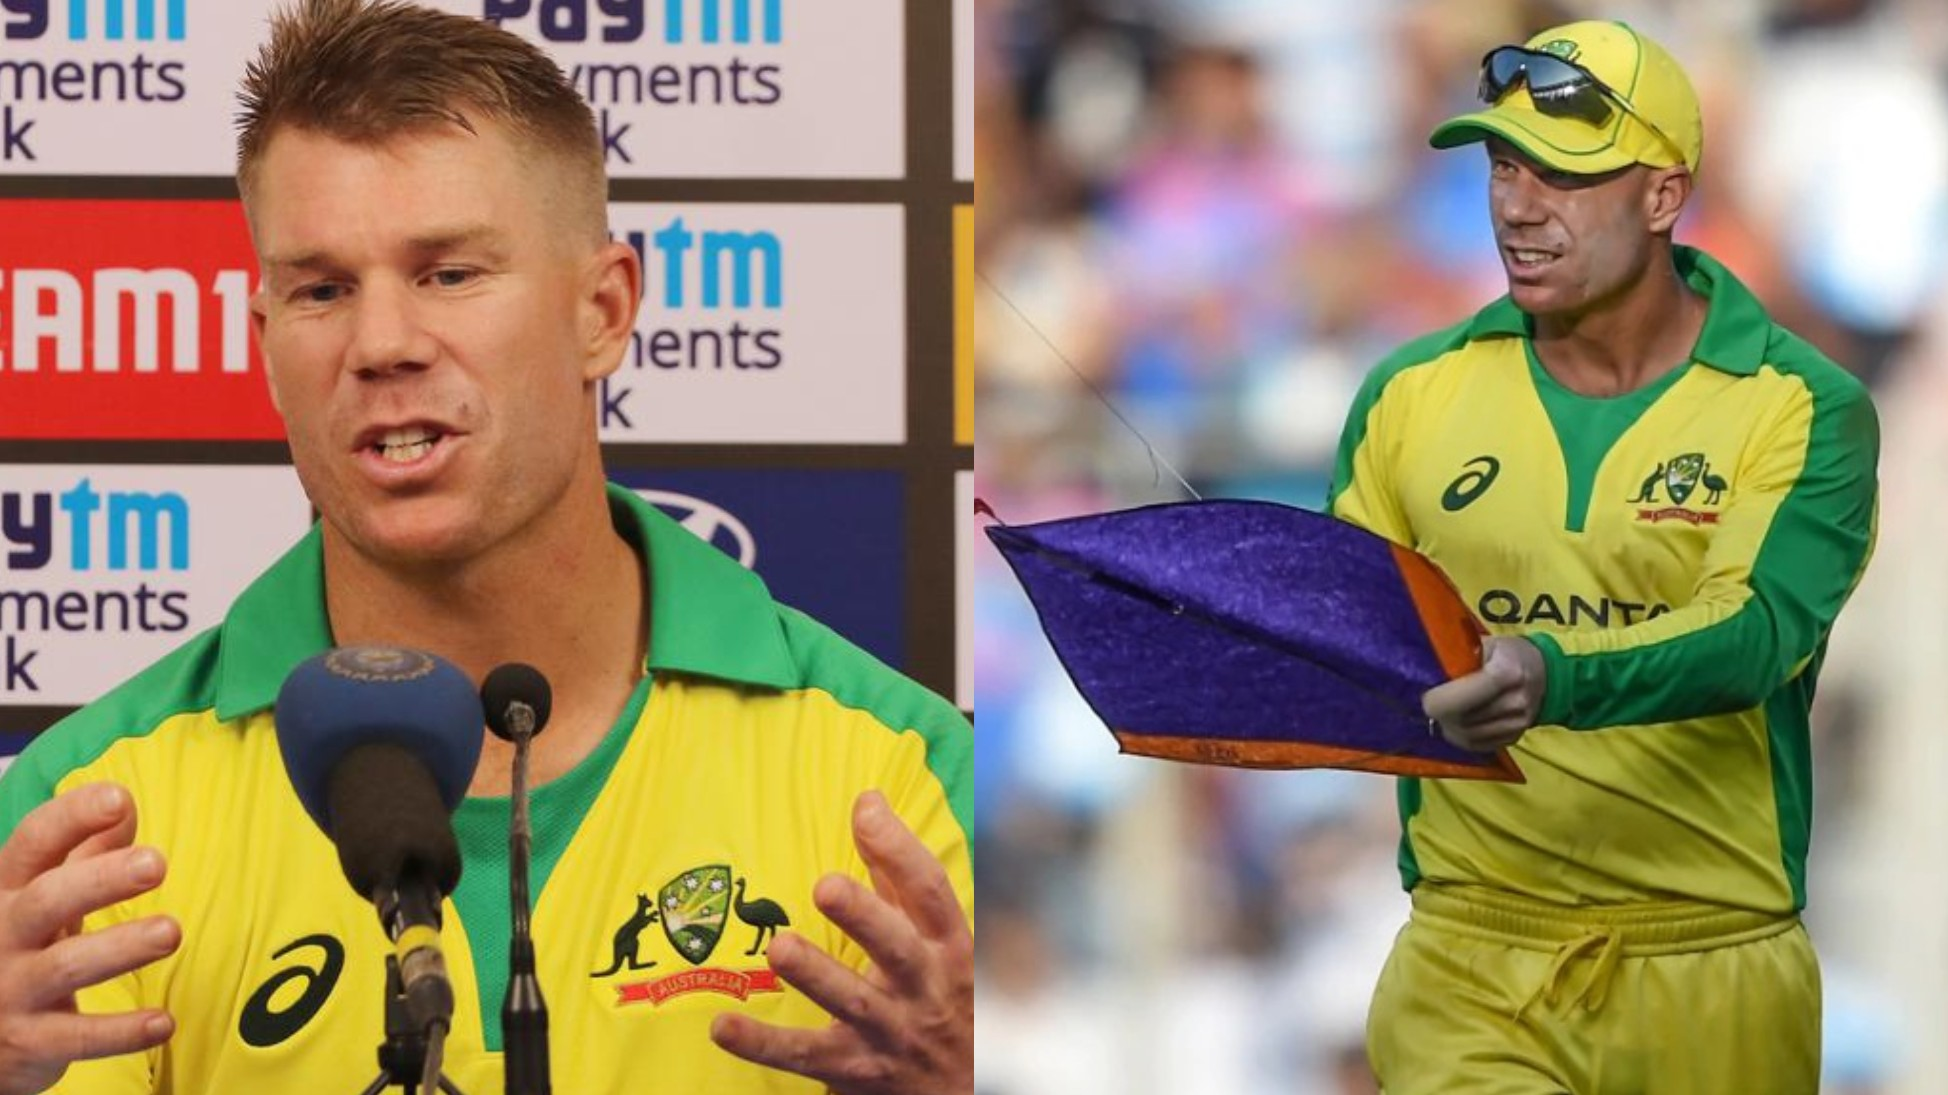 IND v AUS 2020: WATCH - David Warner surprised to see a kite in Wankhede during first ODI